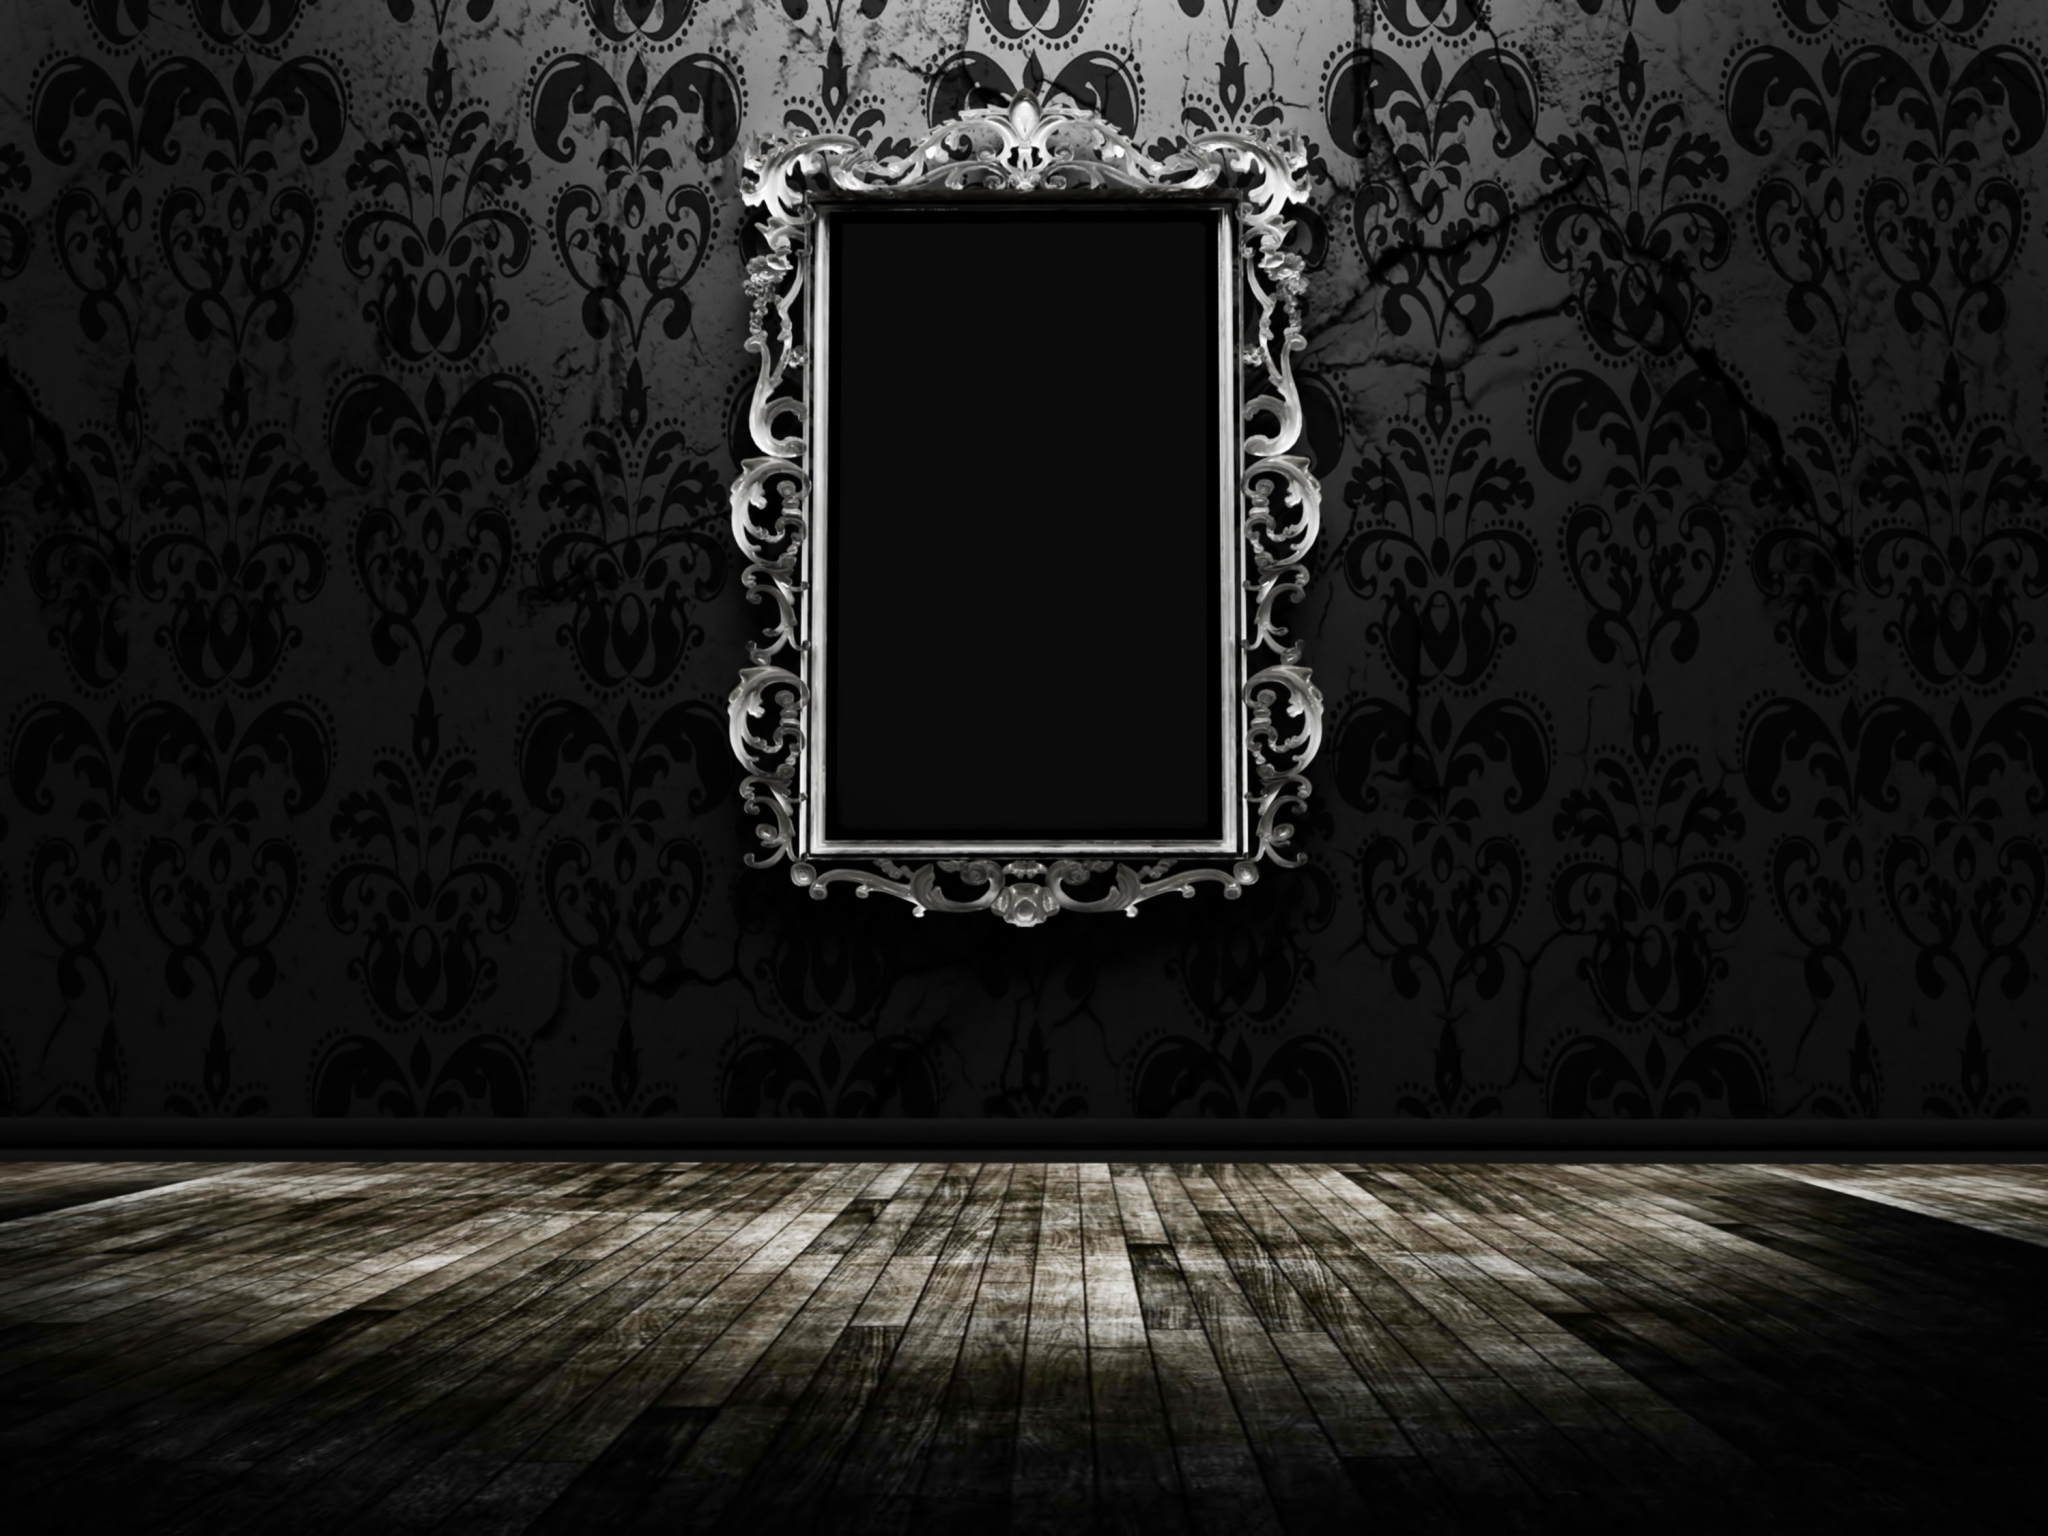 Mirror Wallpaper - Dark Background With Mirror (#279461) - HD ...